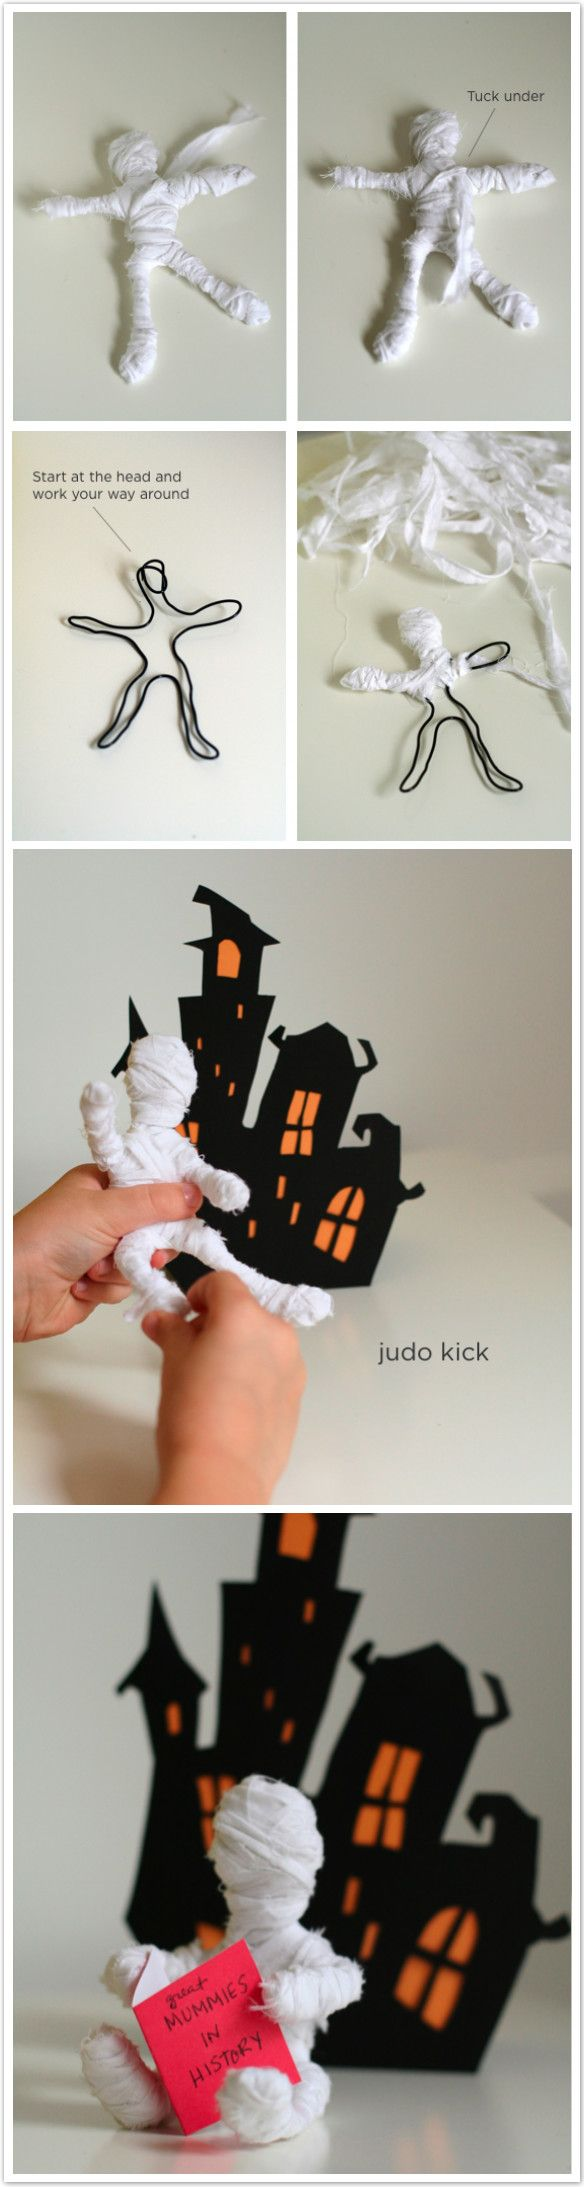 DIY minature mummy. This would be great for stop motion